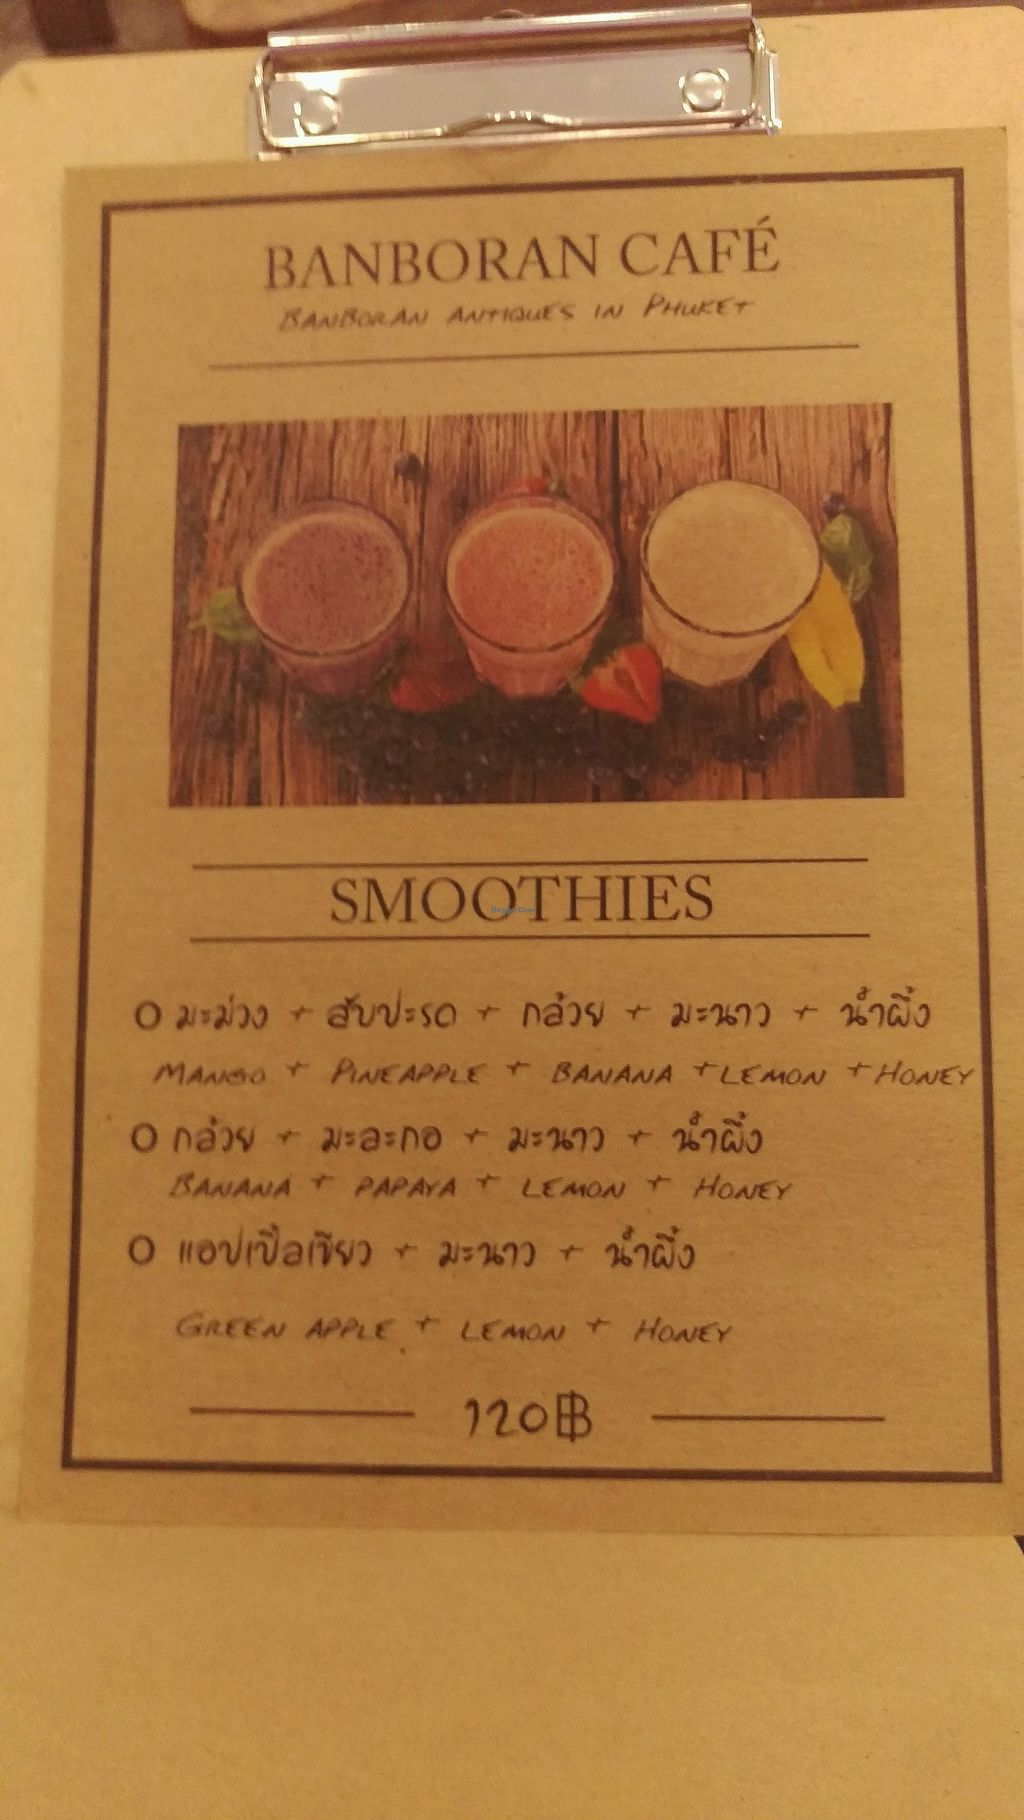 """Photo of Banboran Cafe  by <a href=""""/members/profile/MarjoDsgln"""">MarjoDsgln</a> <br/>smoothies menu  <br/> February 19, 2018  - <a href='/contact/abuse/image/88108/361120'>Report</a>"""